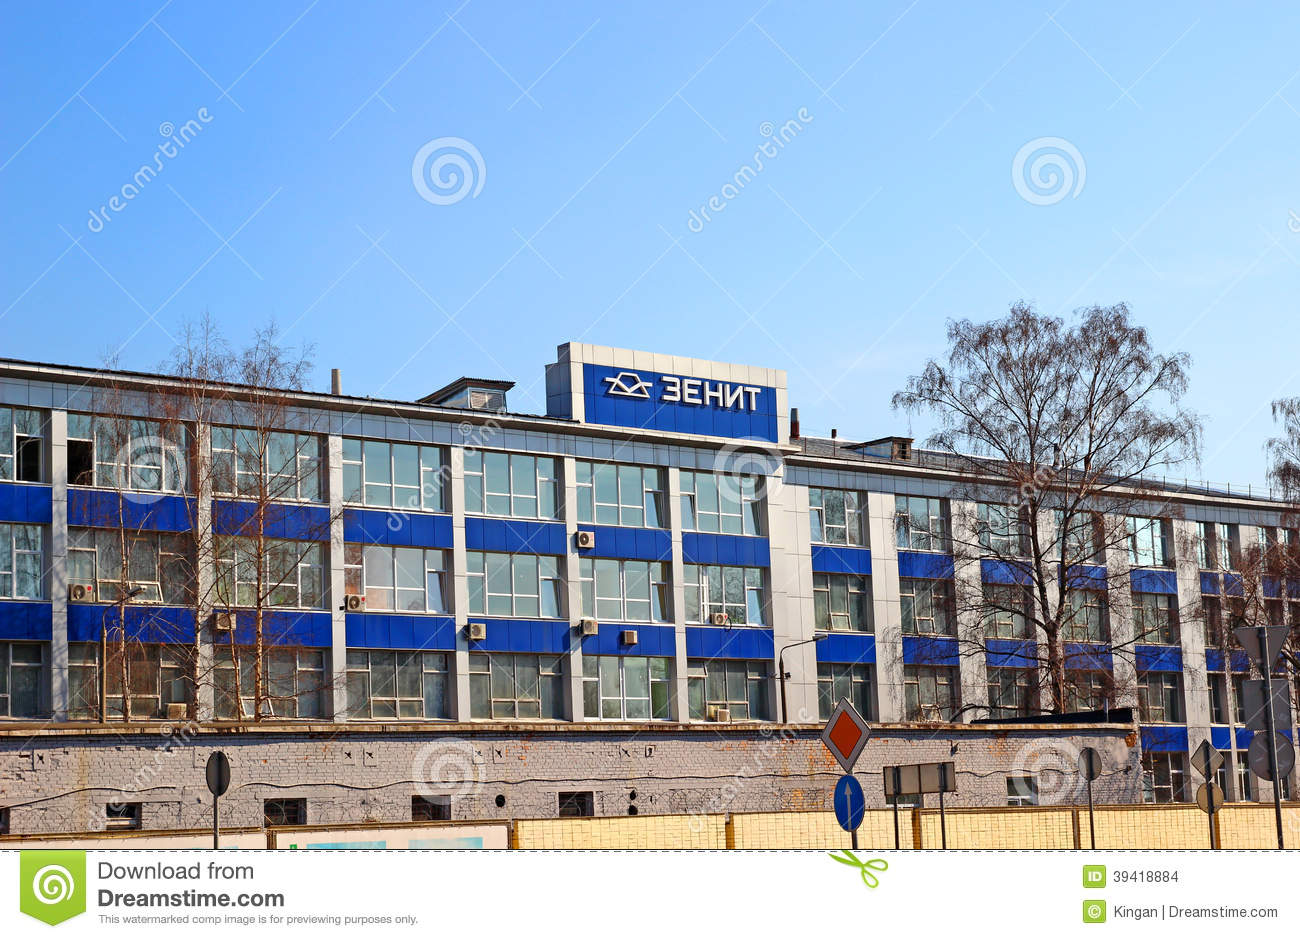 Krasnogorsk Russia  city photos gallery : ... russian manufacturer of lenses on march 25 2014 in krasnogorsk russia